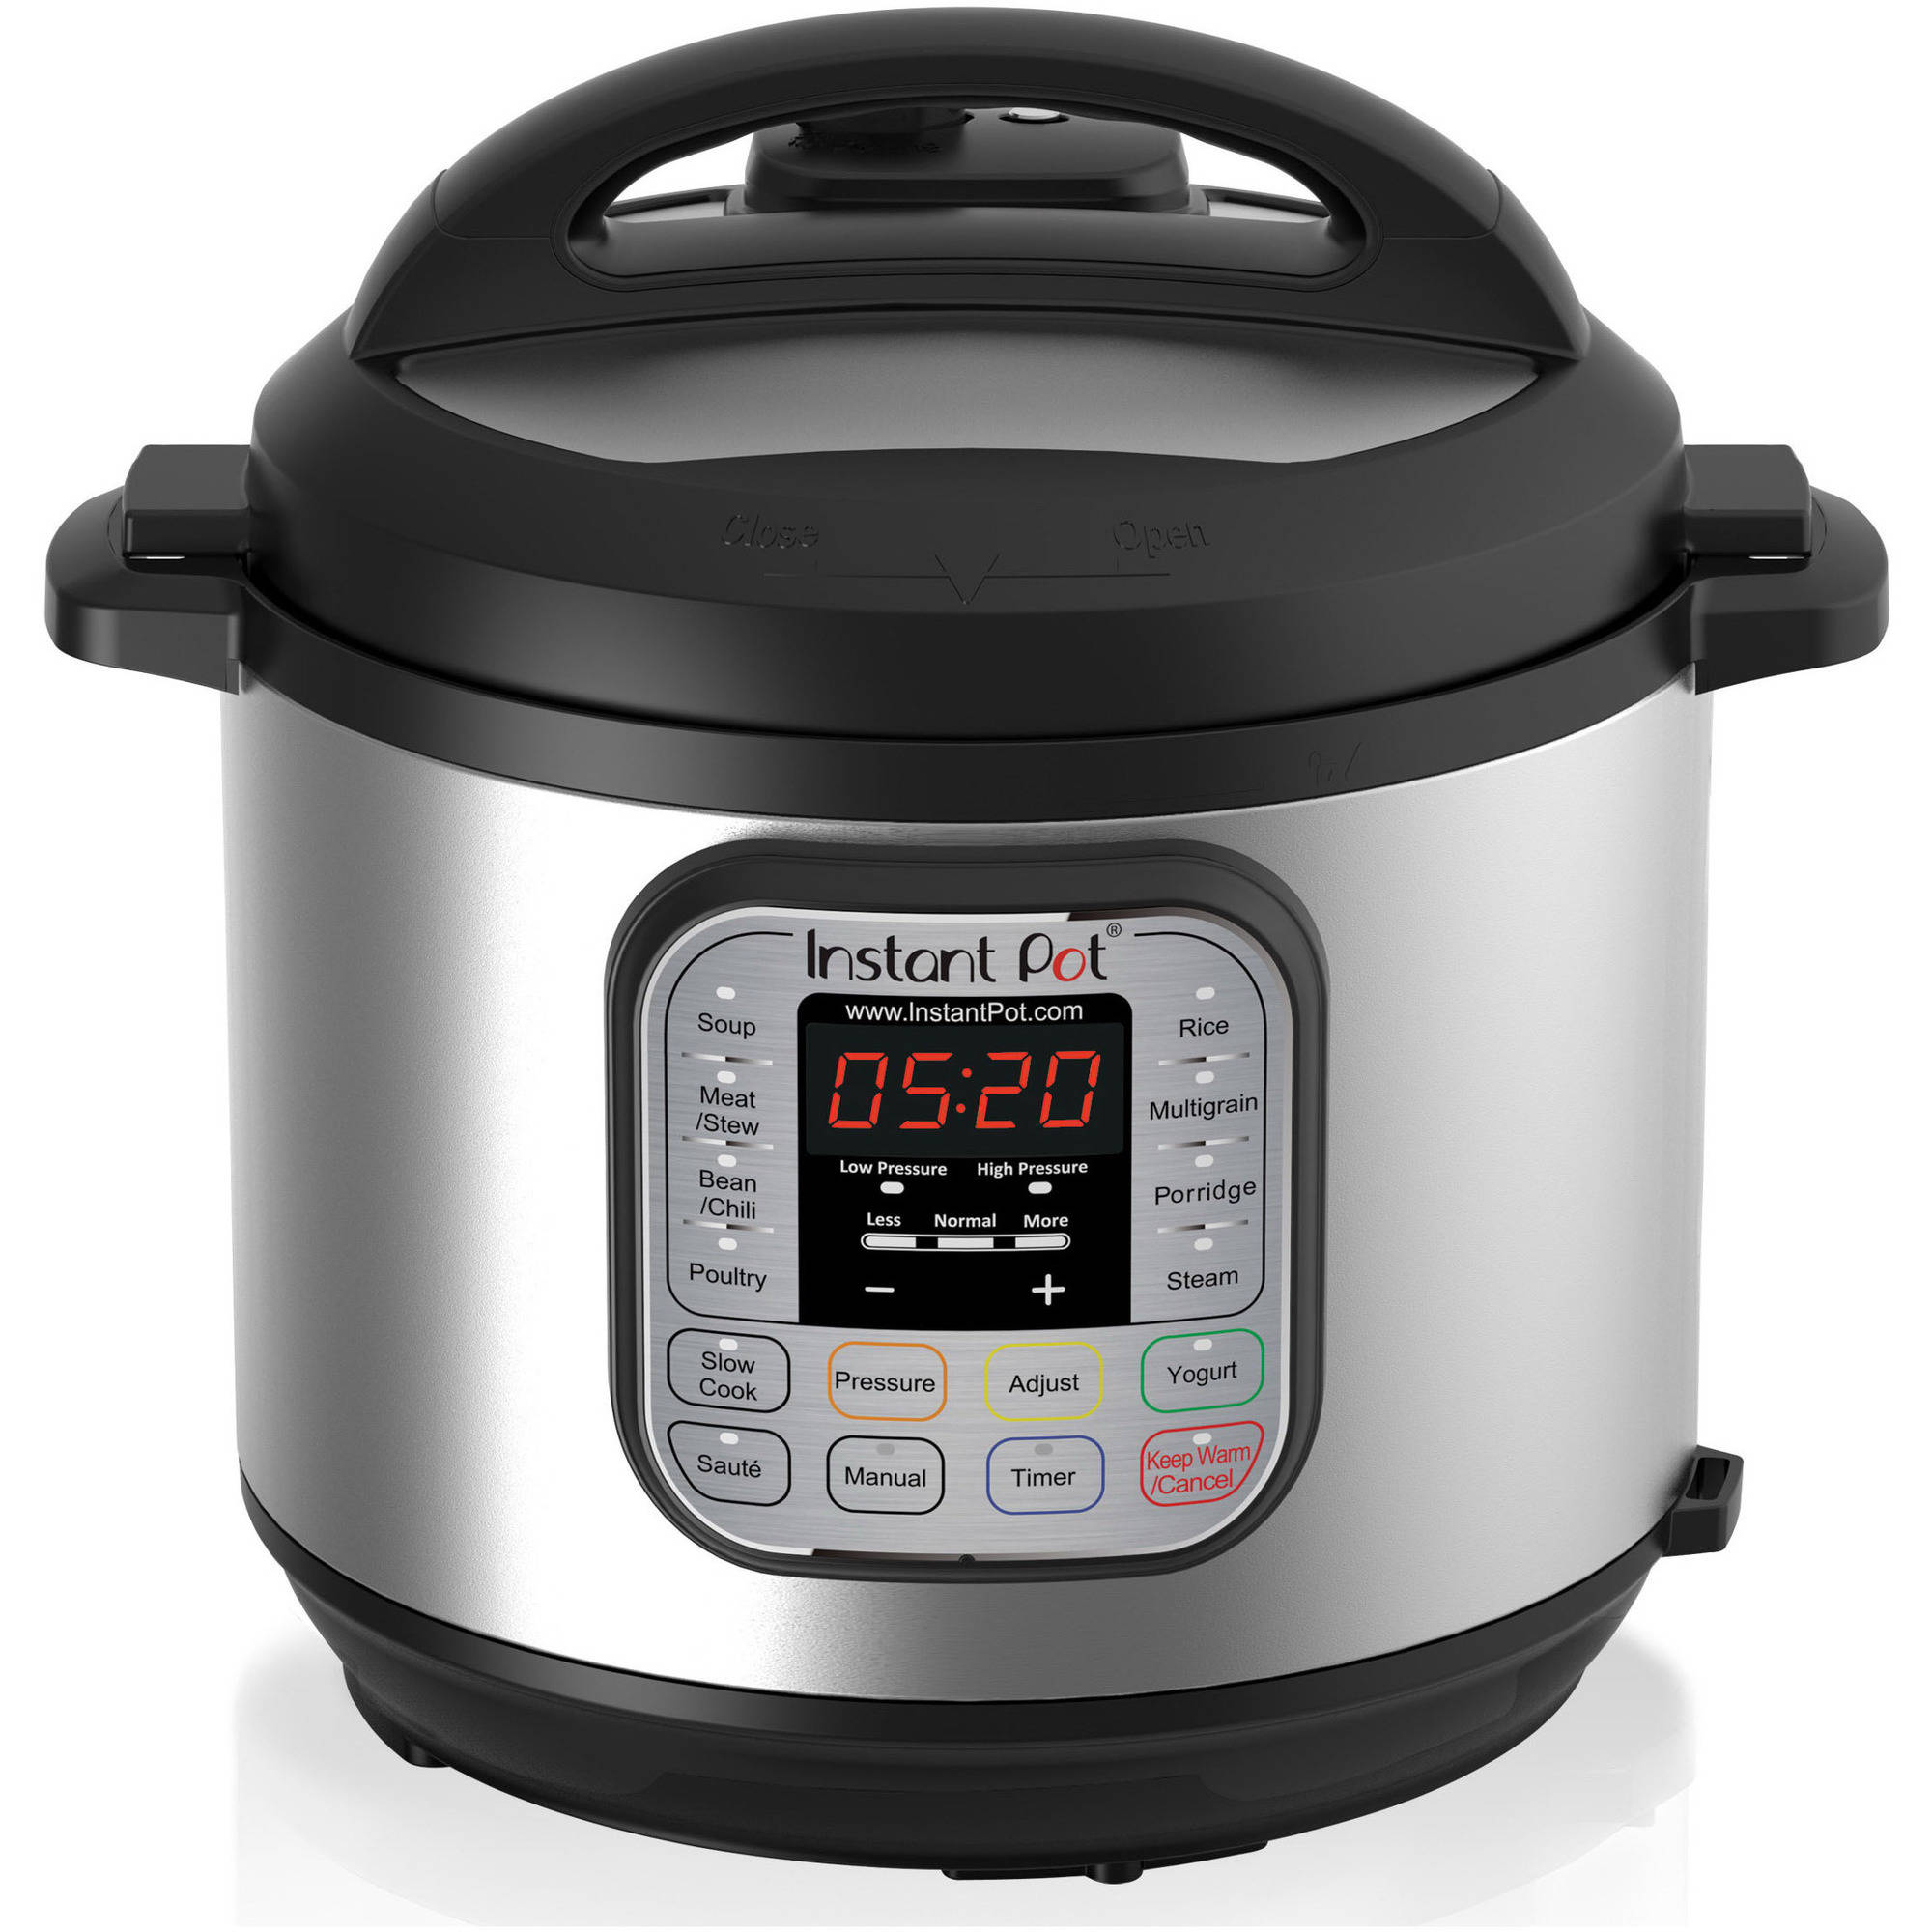 Instant Pot IP-DUO60 Stainless Steel 6-Quart 7-in-1 Multi-Functional Pressure Cooker